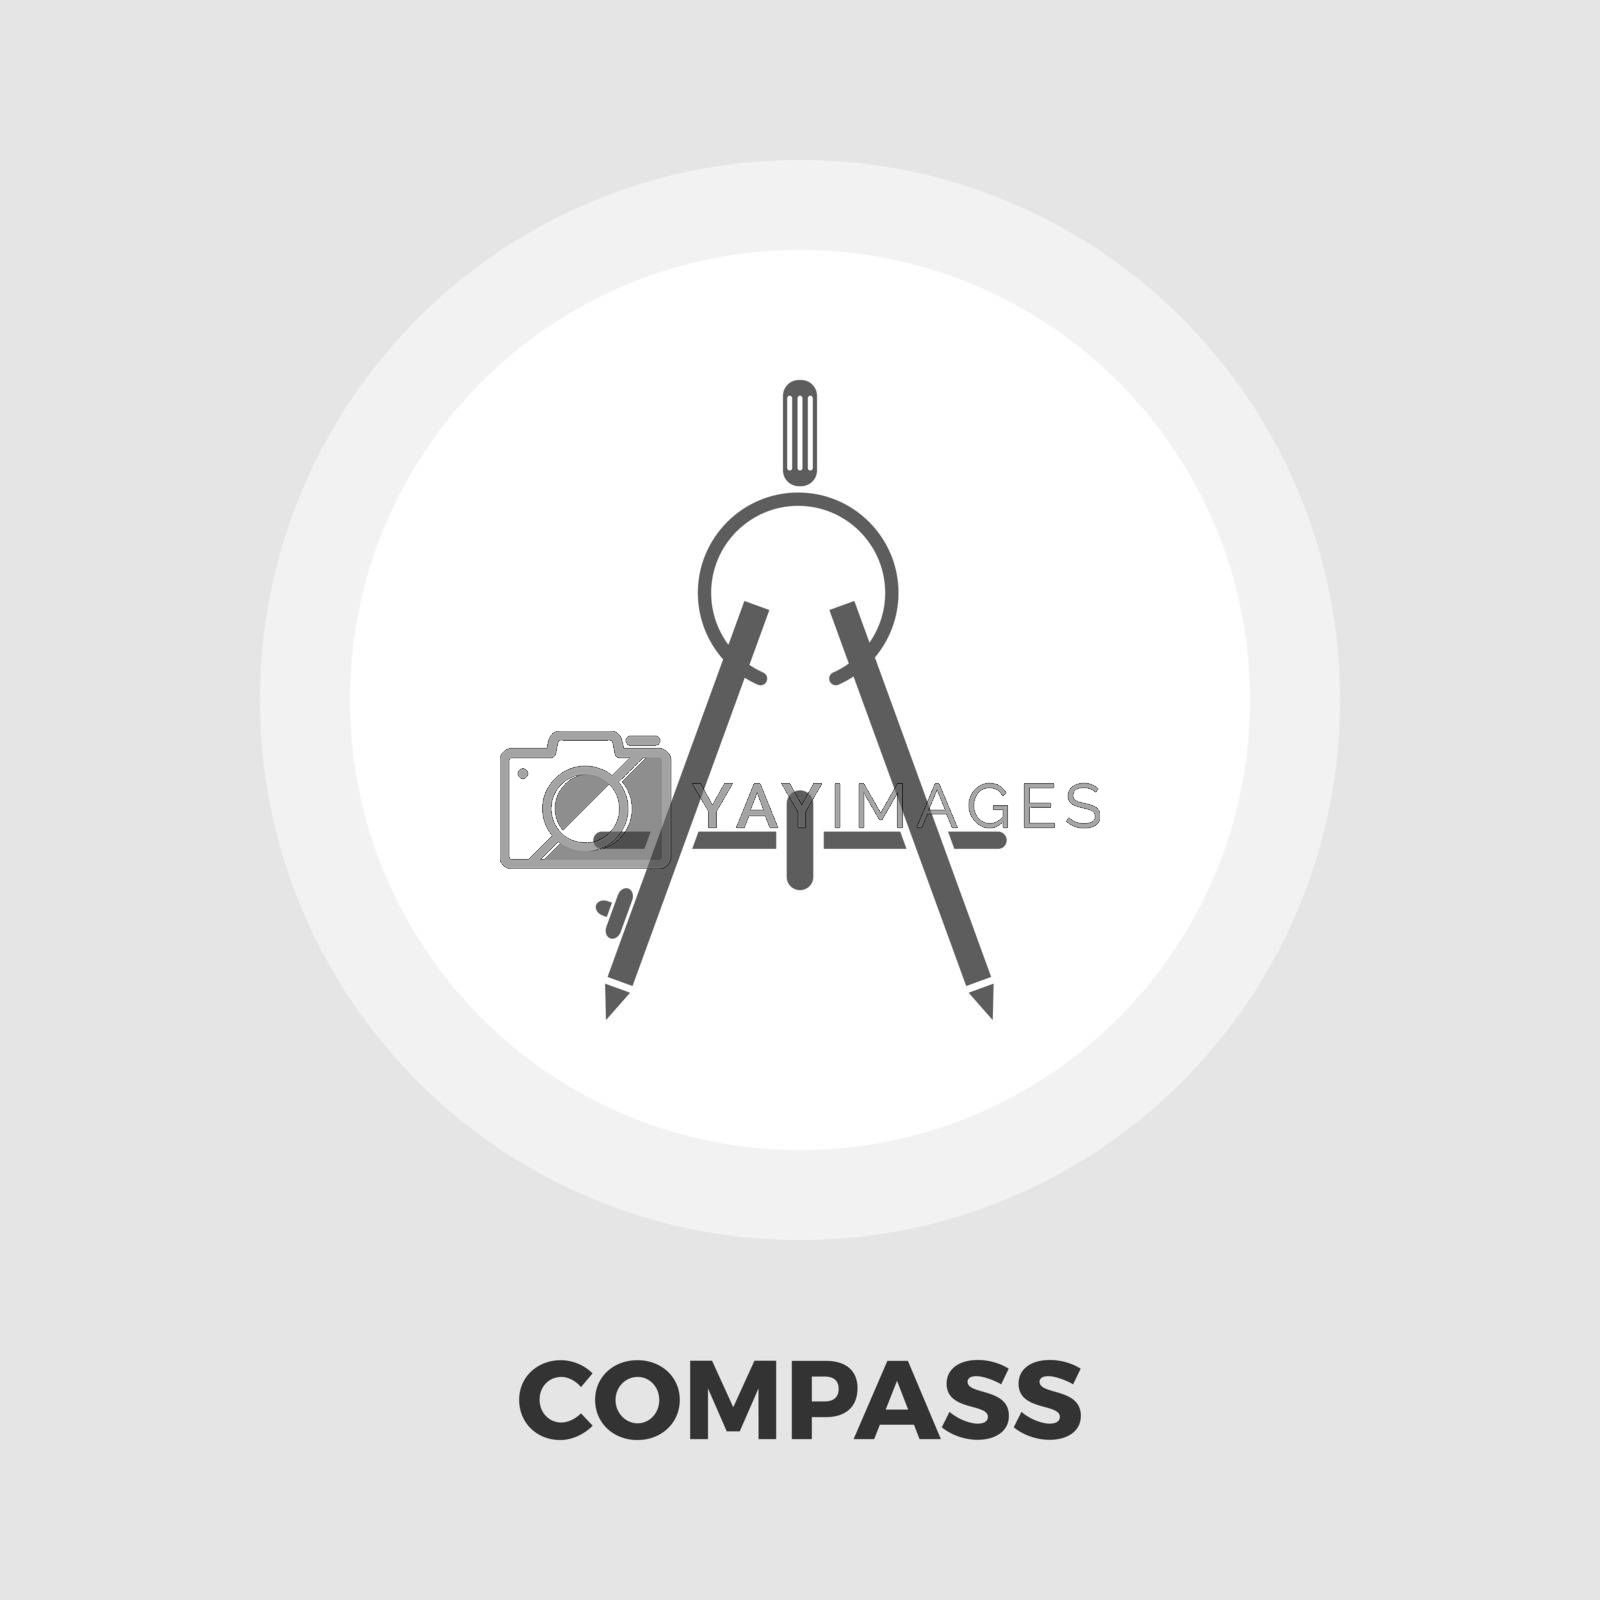 Compass icon vector. Flat icon isolated on the white background. Editable EPS file. Vector illustration.